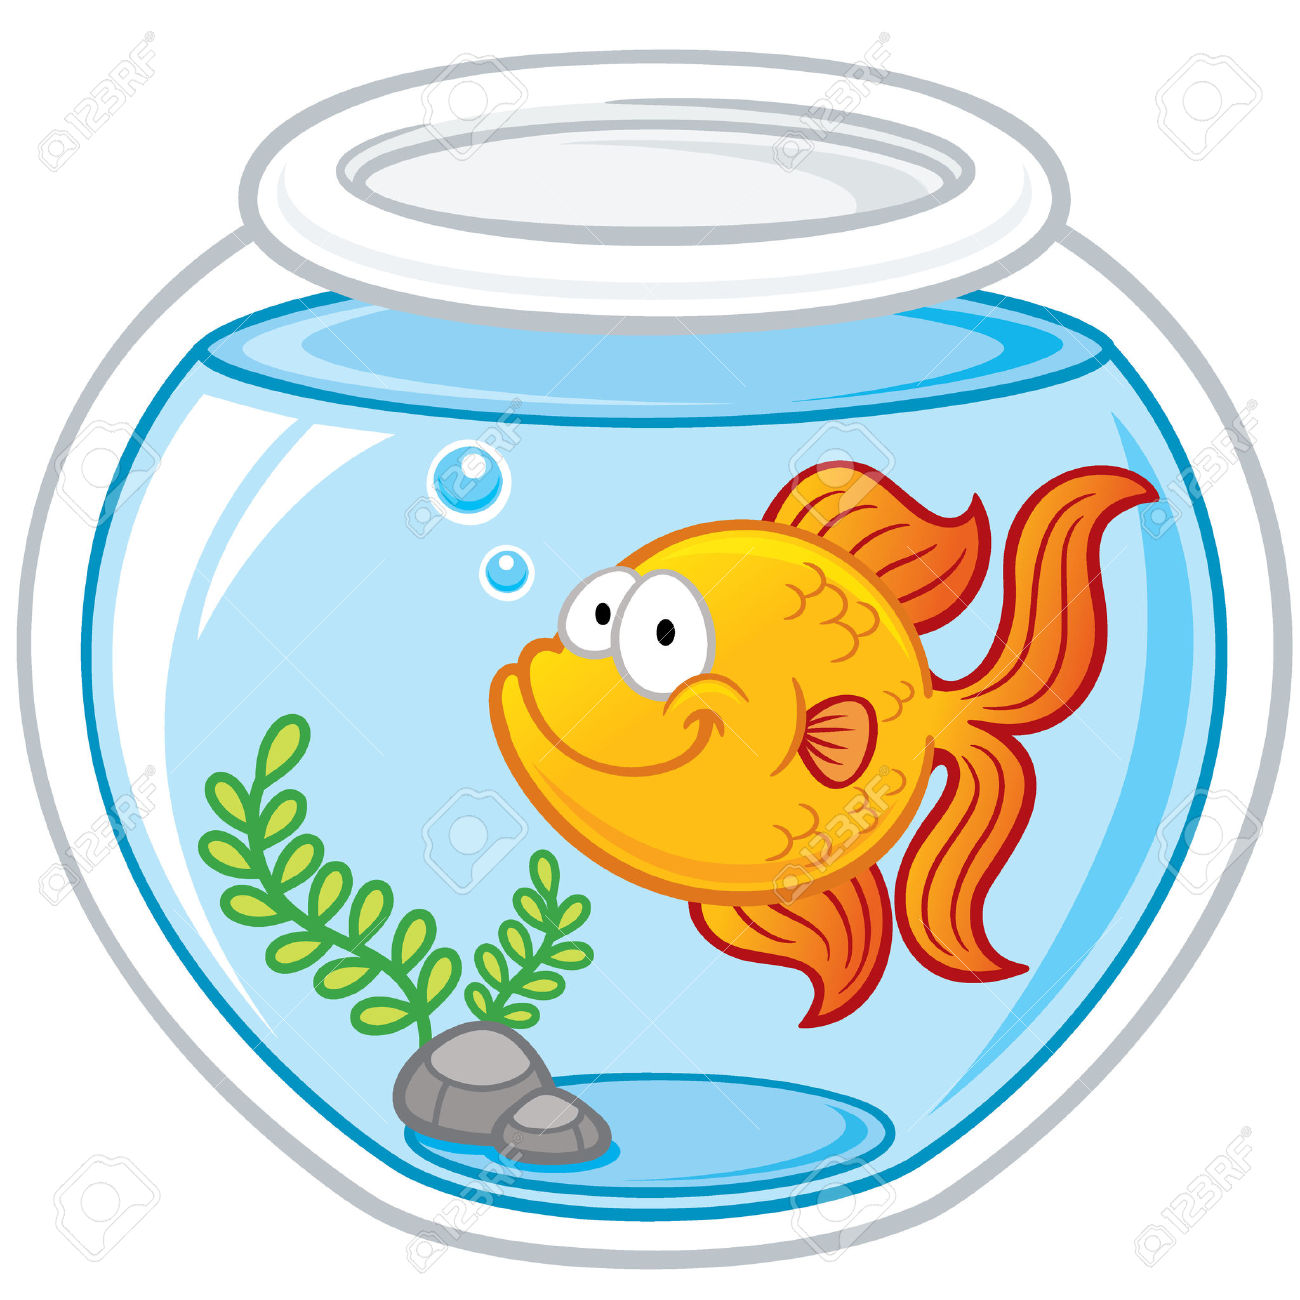 Free download best on. Fishbowl clipart cartoon